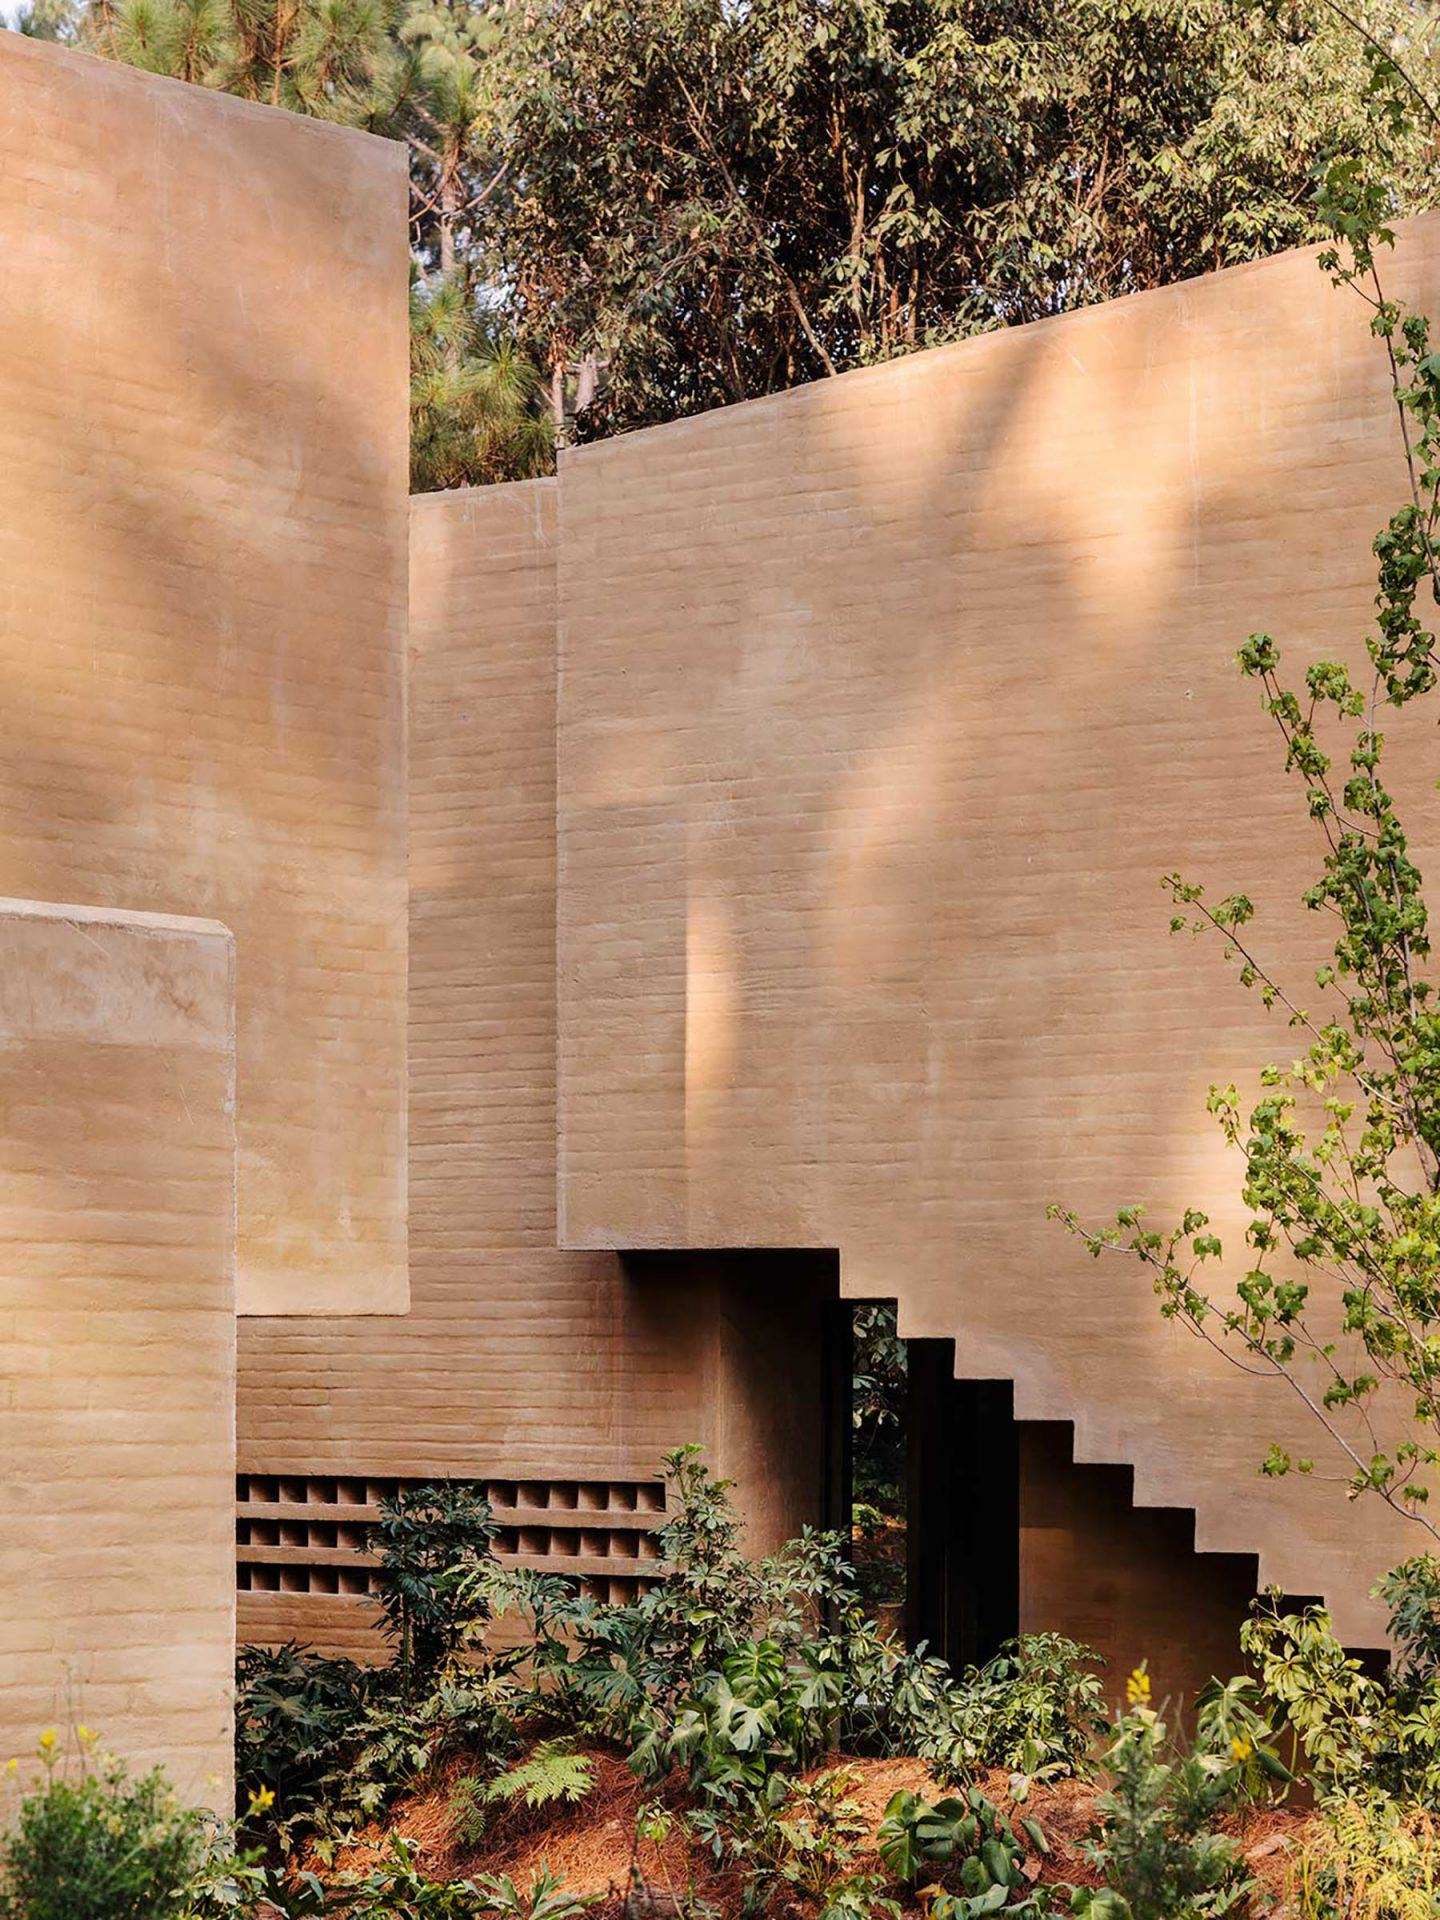 IGNANT-Architecture-Taller-Hector-Barroso-Entre-Pinos-17